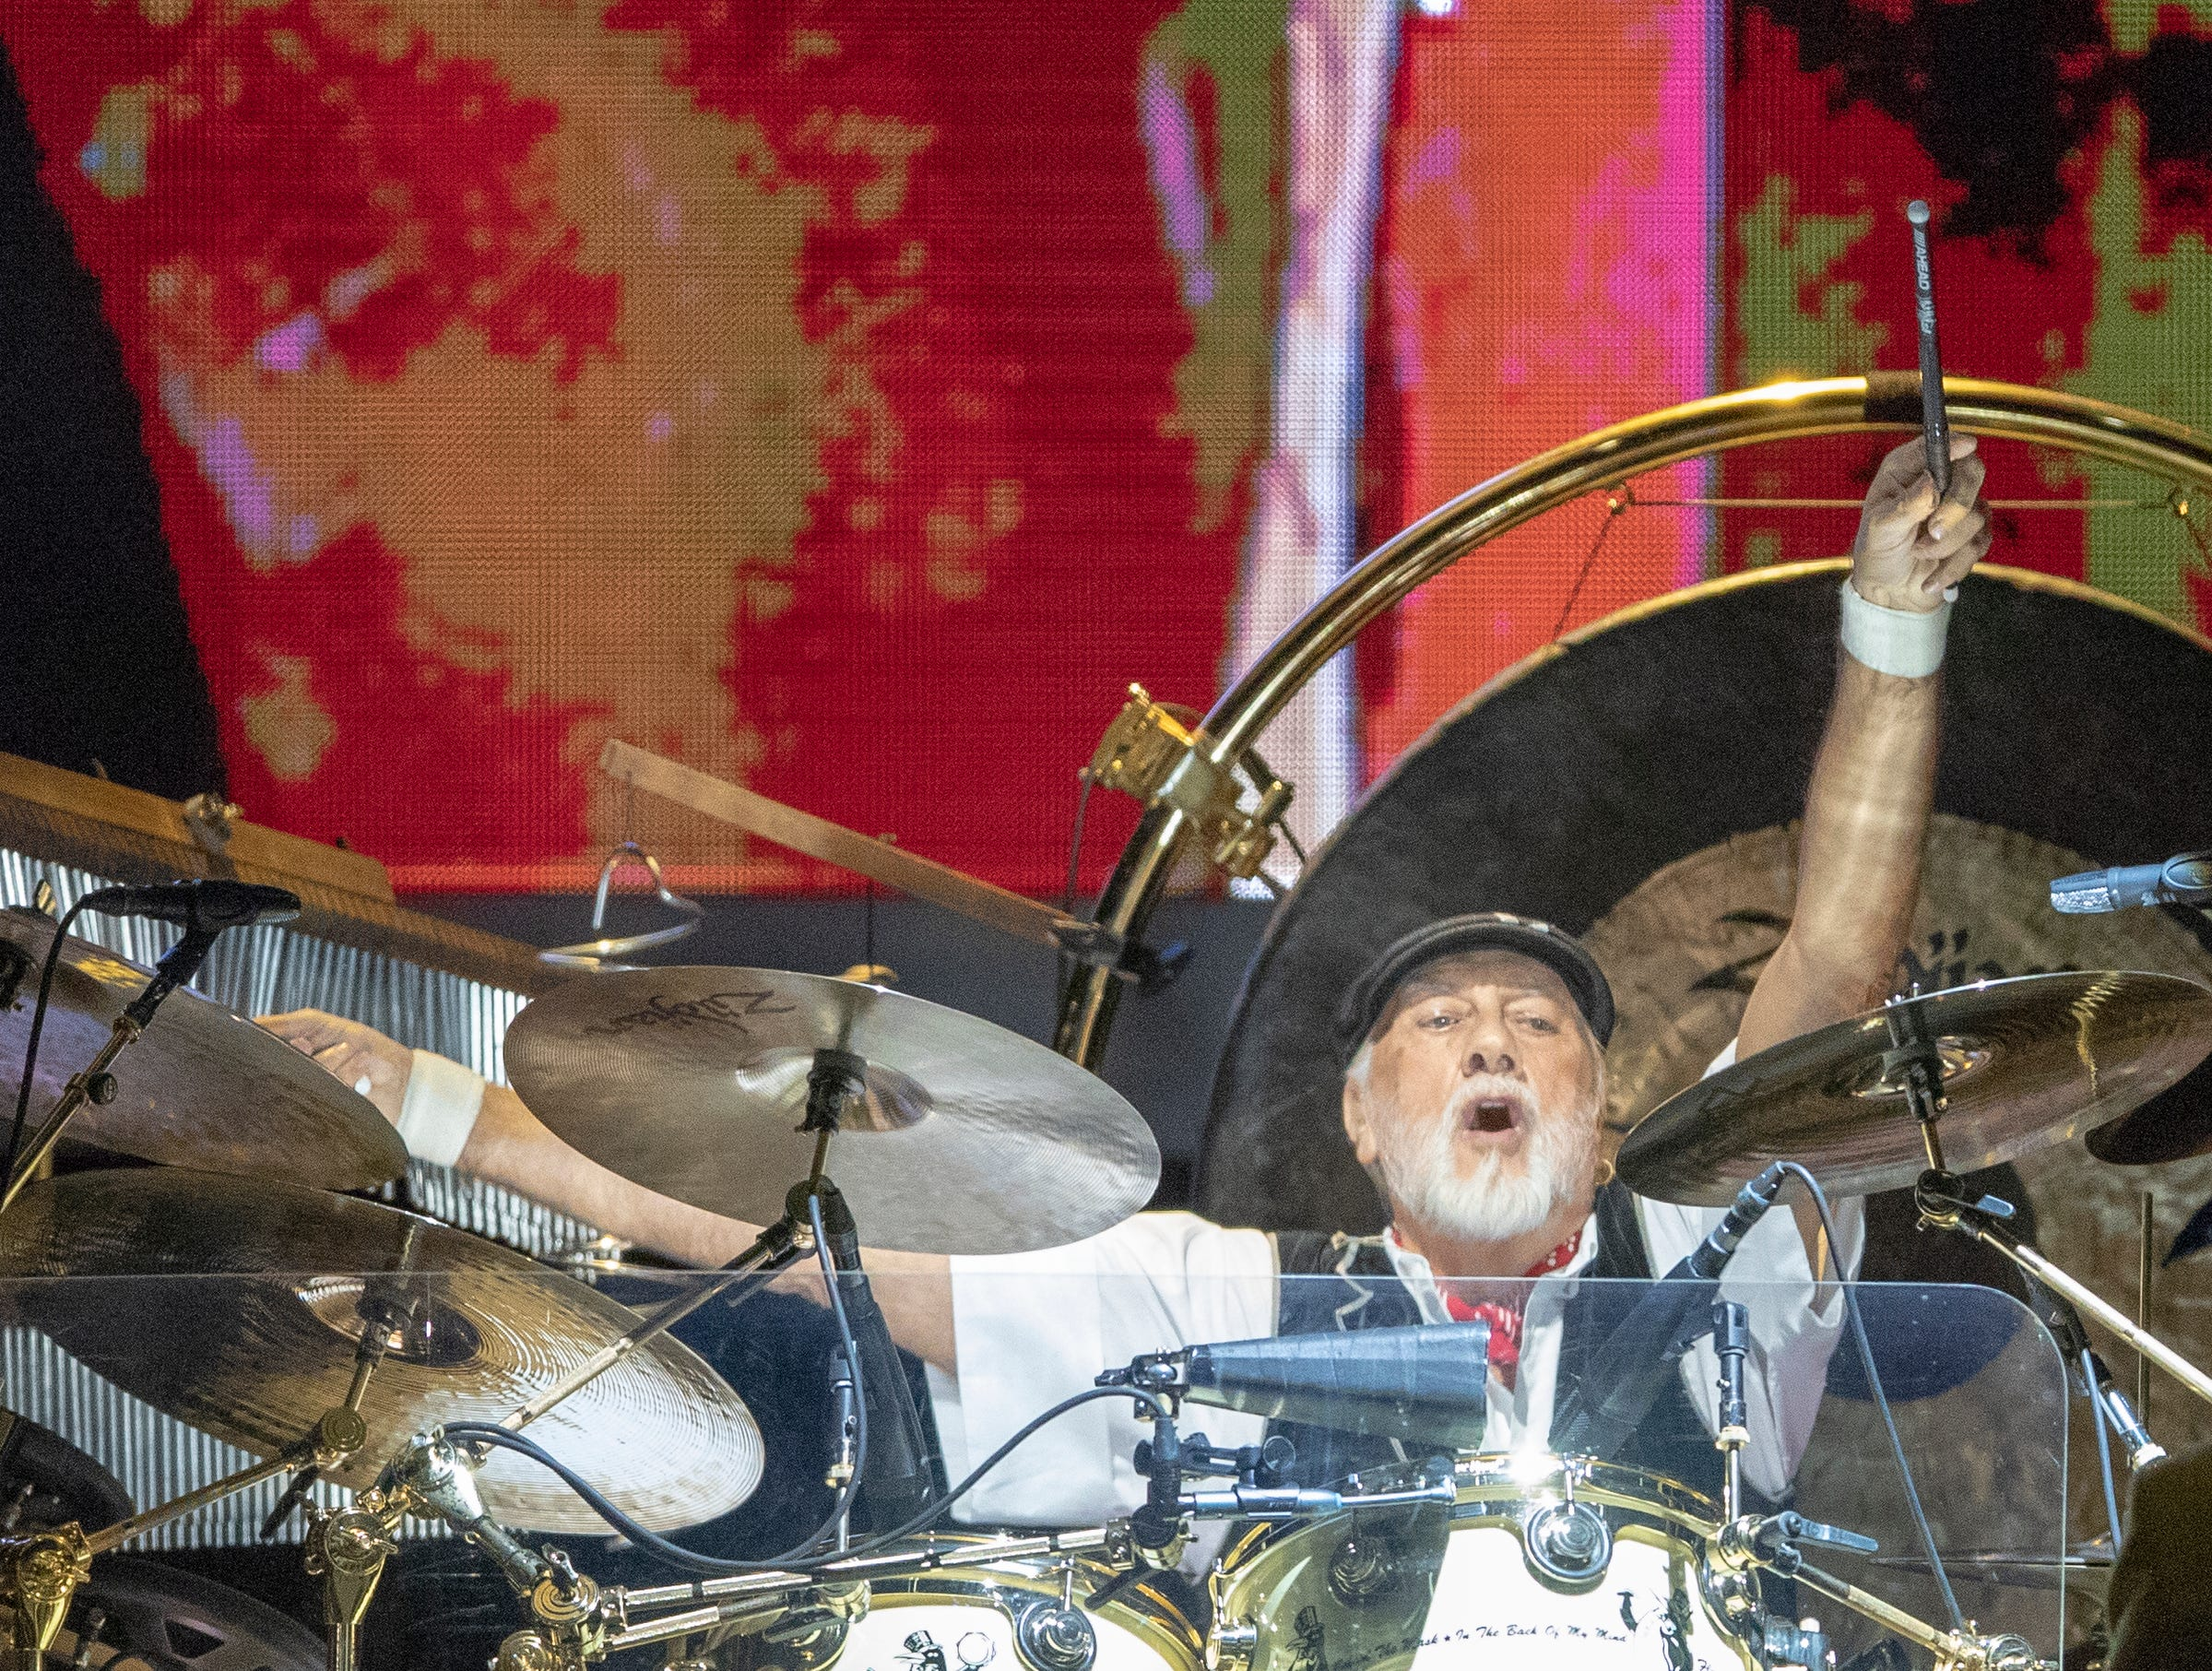 Mick Fleetwood plays drums during a performance by Fleetwood Mac at Bankers Life Fieldhouse, Indianapolis, Tuesday, Oct. 16, 2018. The band is playing on their current North American tour.